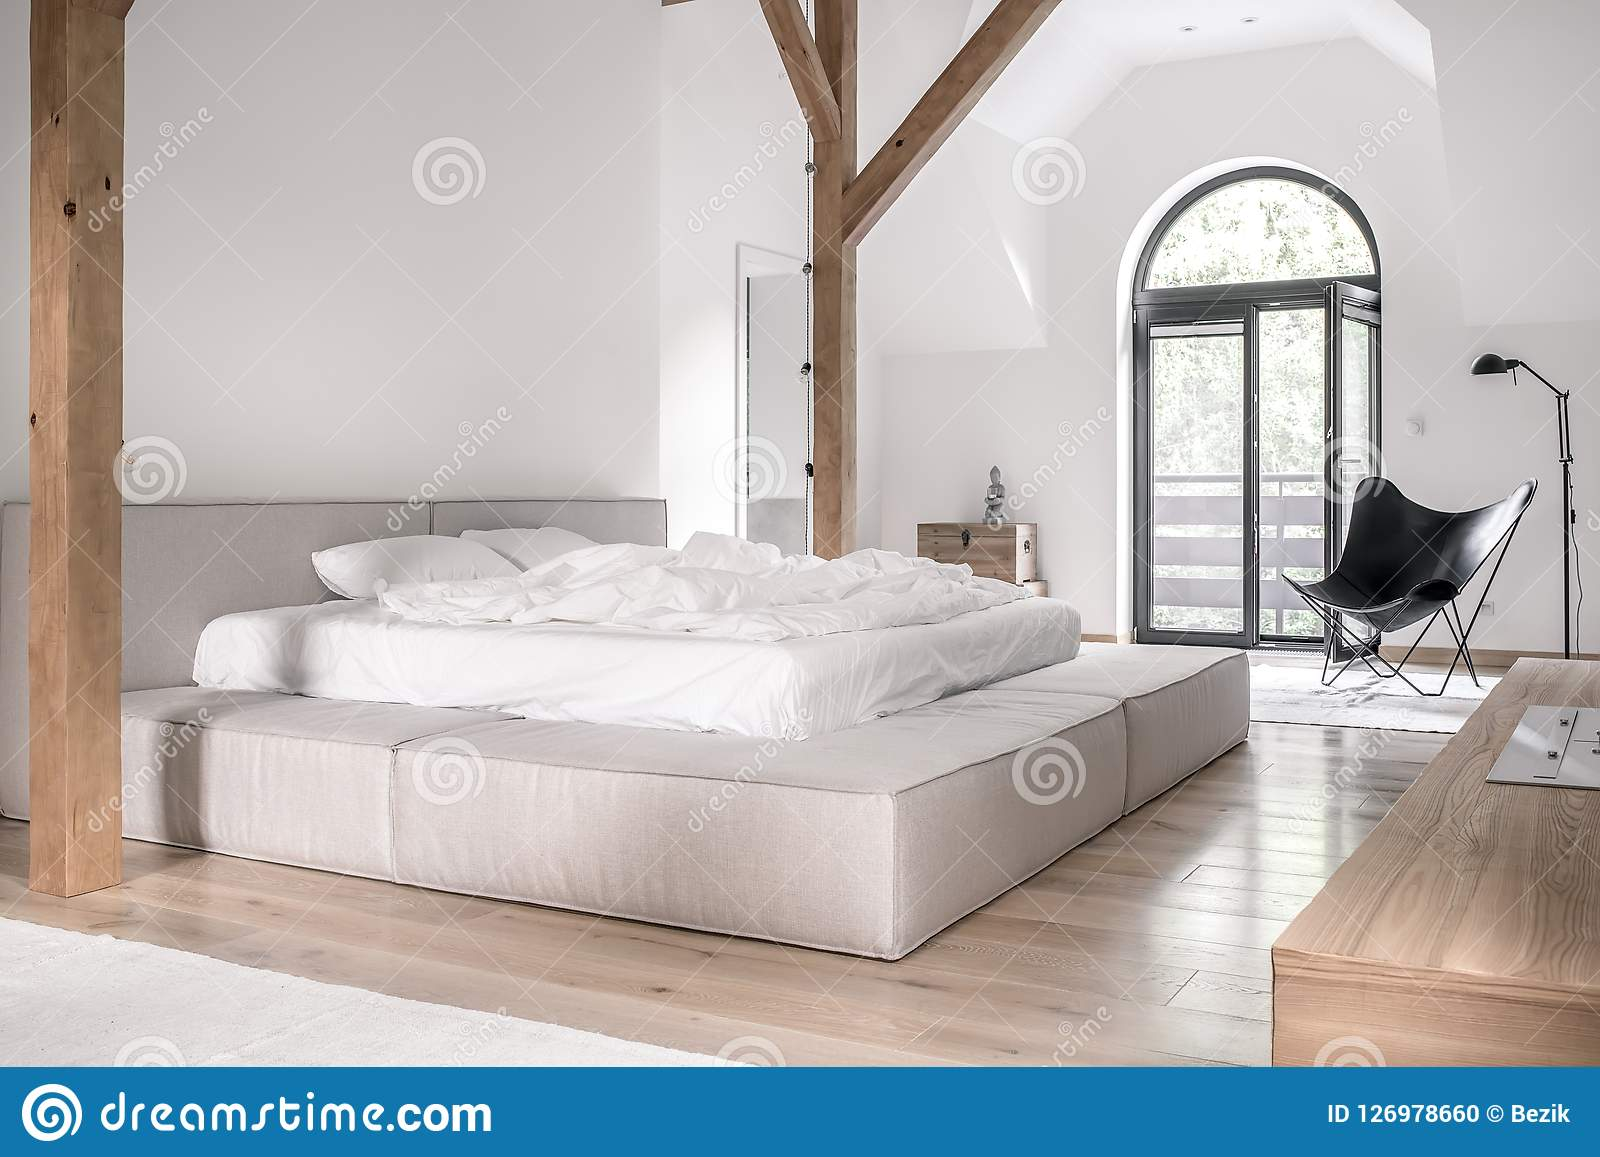 Stylish Bedroom In Modern Style With Wooden Beams Stock